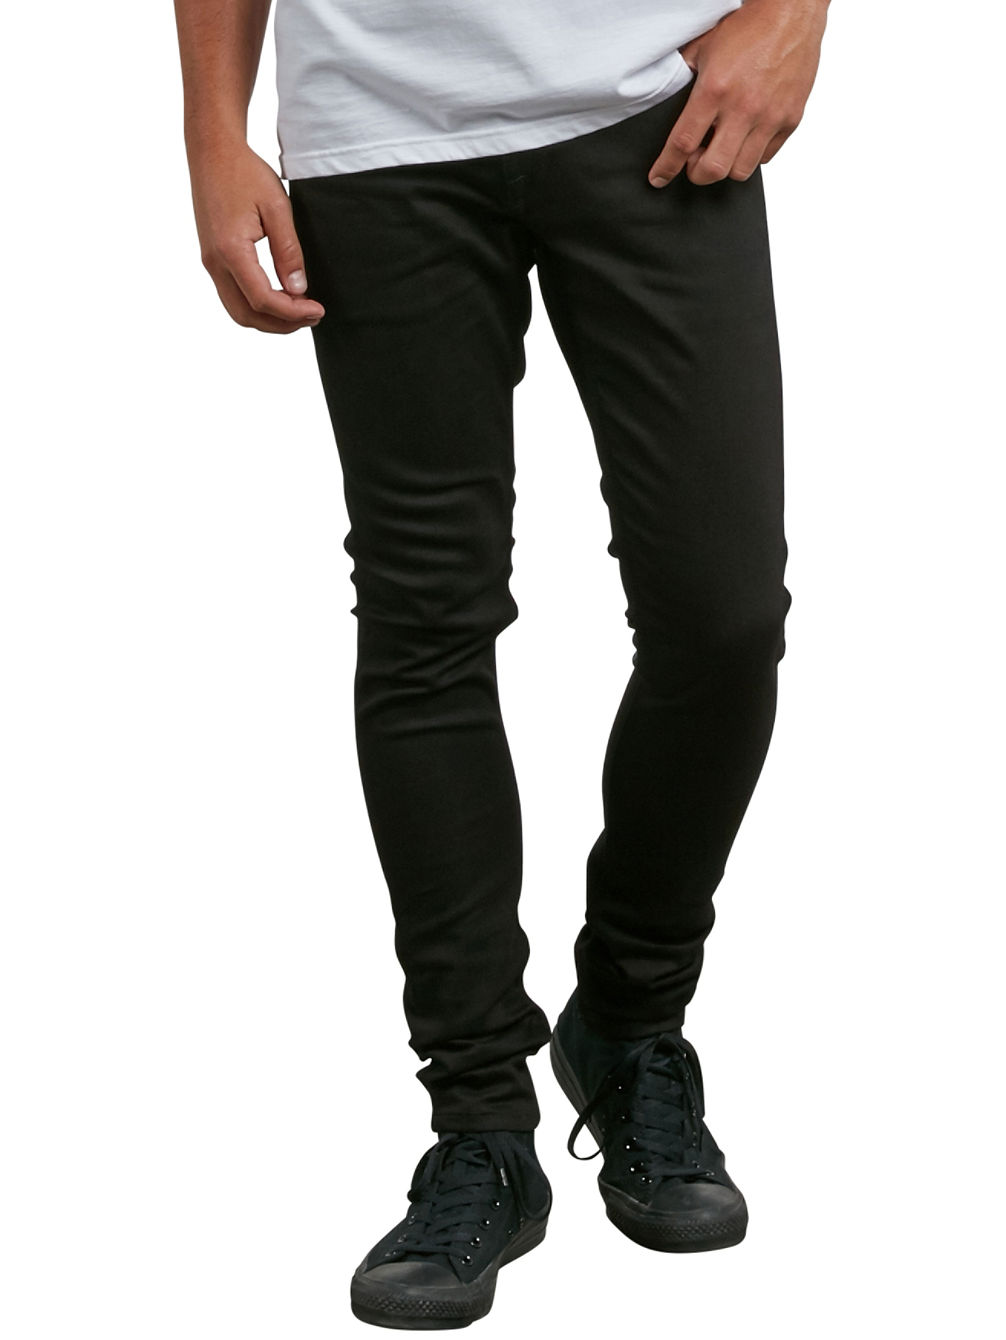 2X4 Tapered Jeans